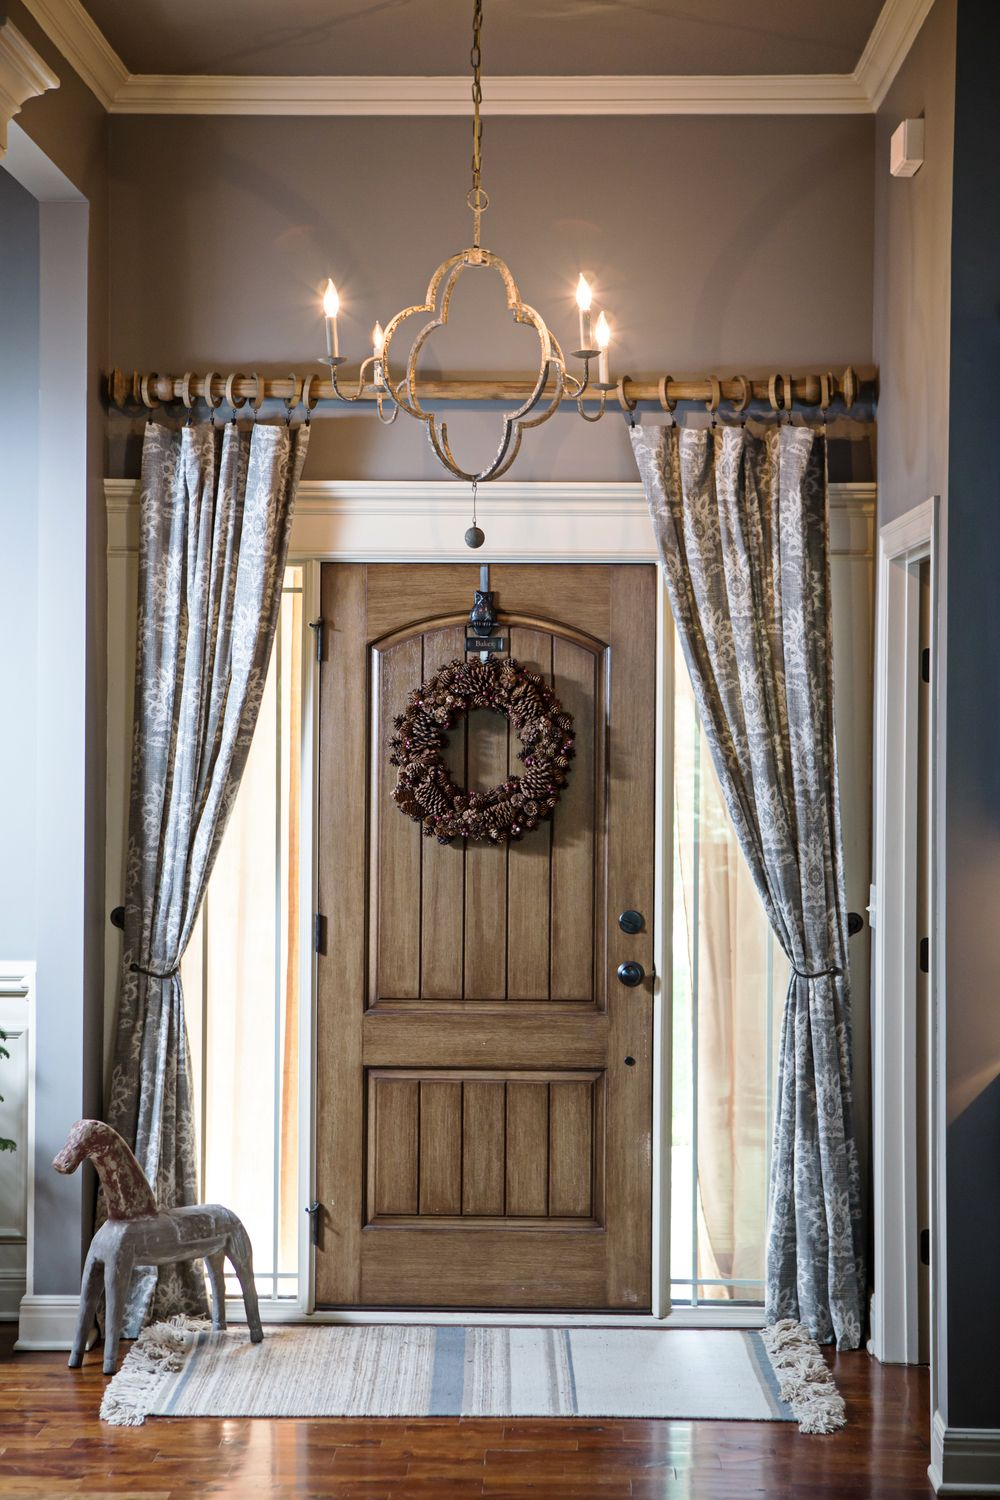 Foyer Door Decor : Curtains over the front door foyer add privacy and style